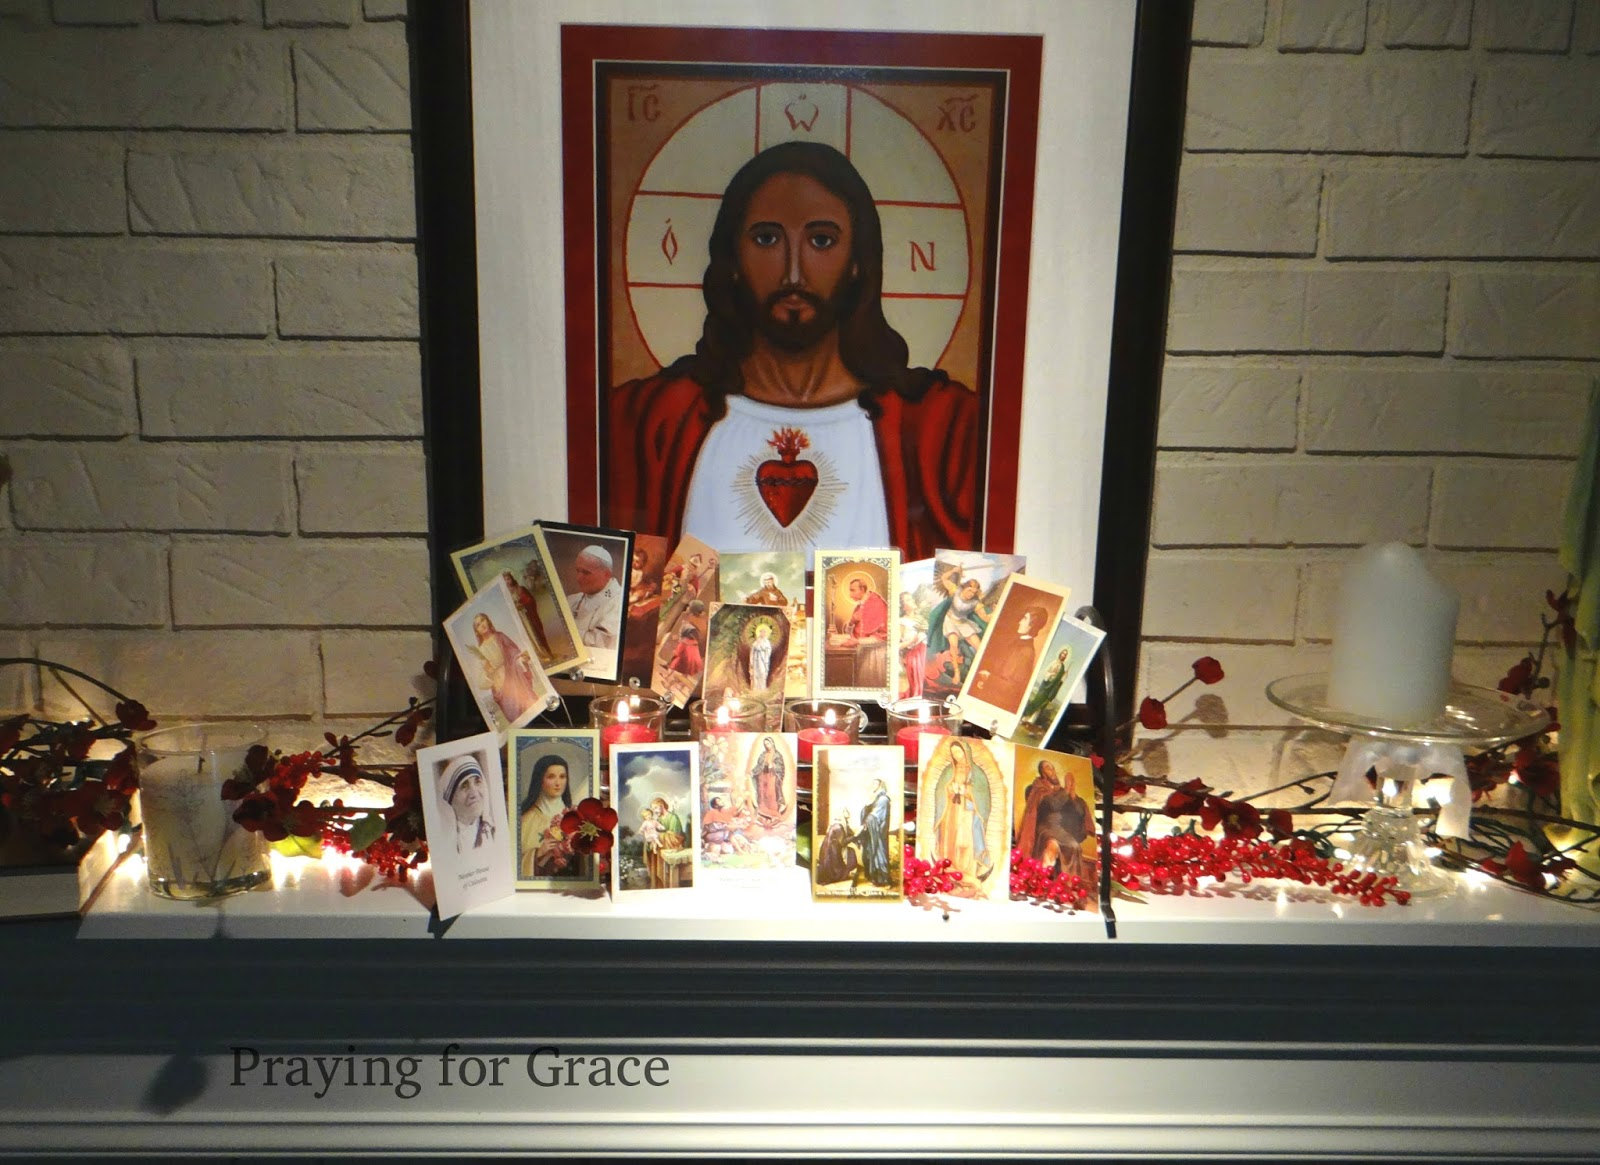 Praying for grace happy all saints day on all saints day we use all our holy cards i use these all year with each months saints only but for all saints day we pretty much just use our m4hsunfo